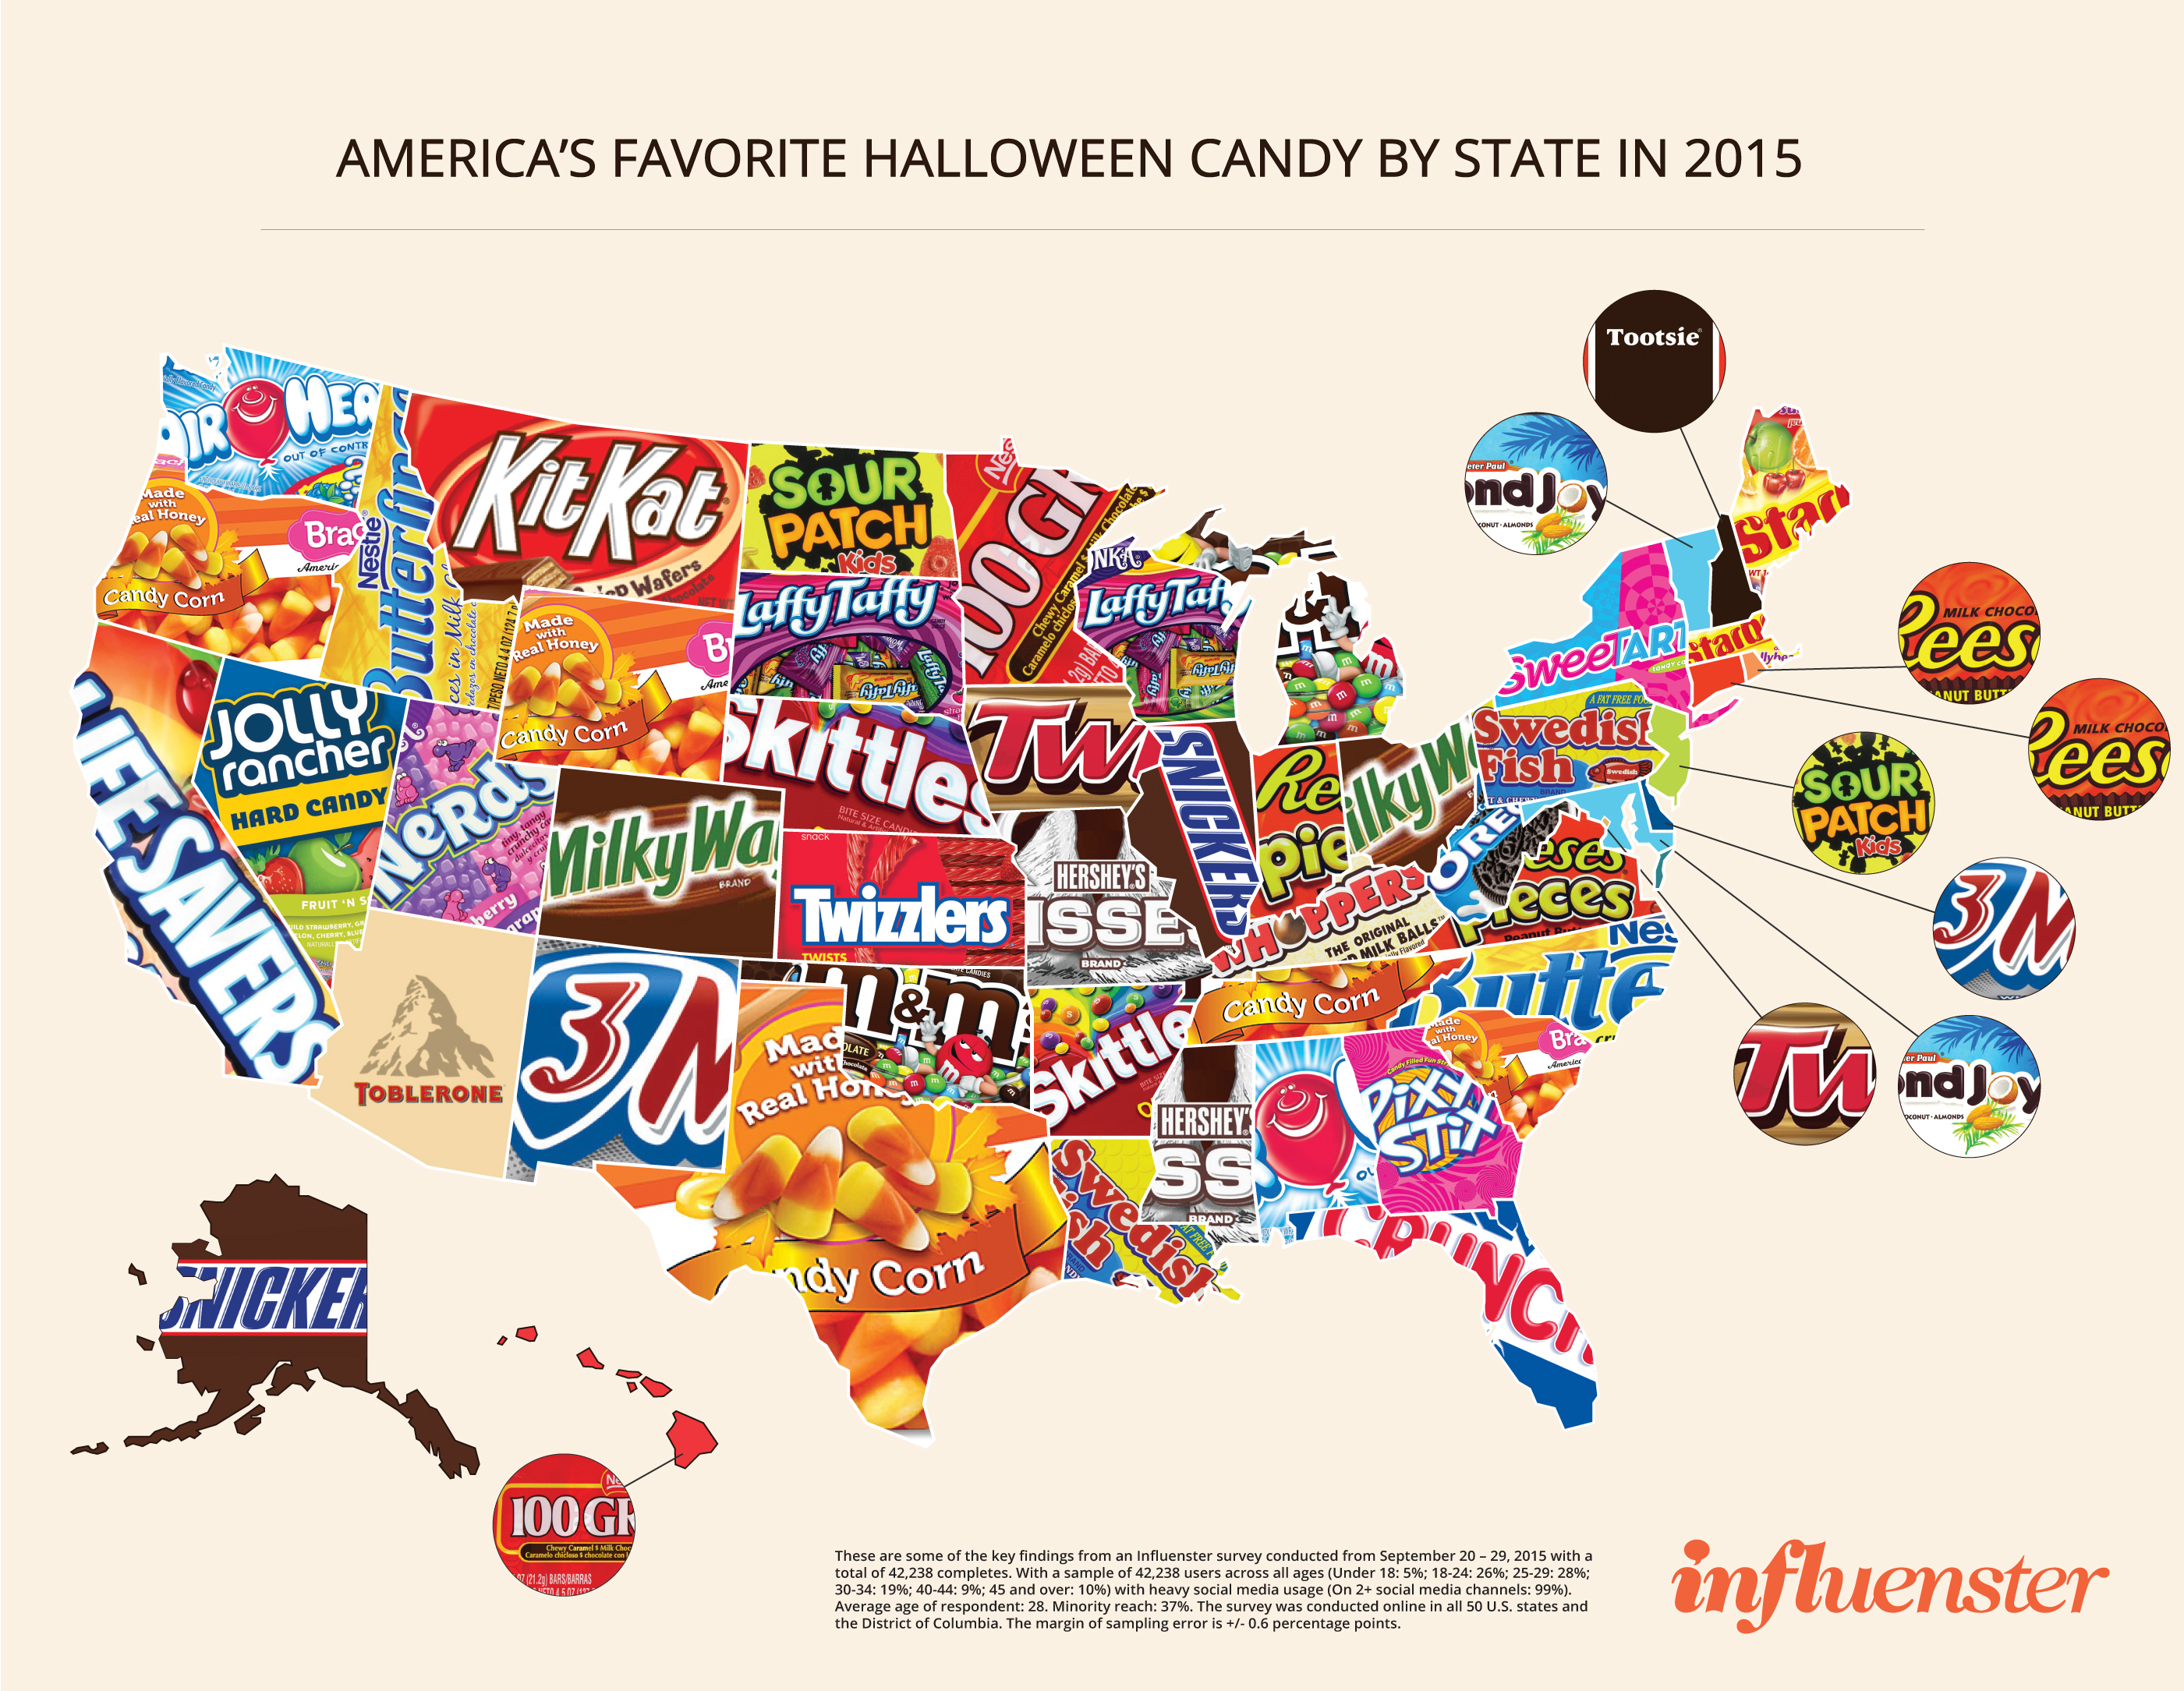 influenster halloween candy map - Top Ten Halloween Candies